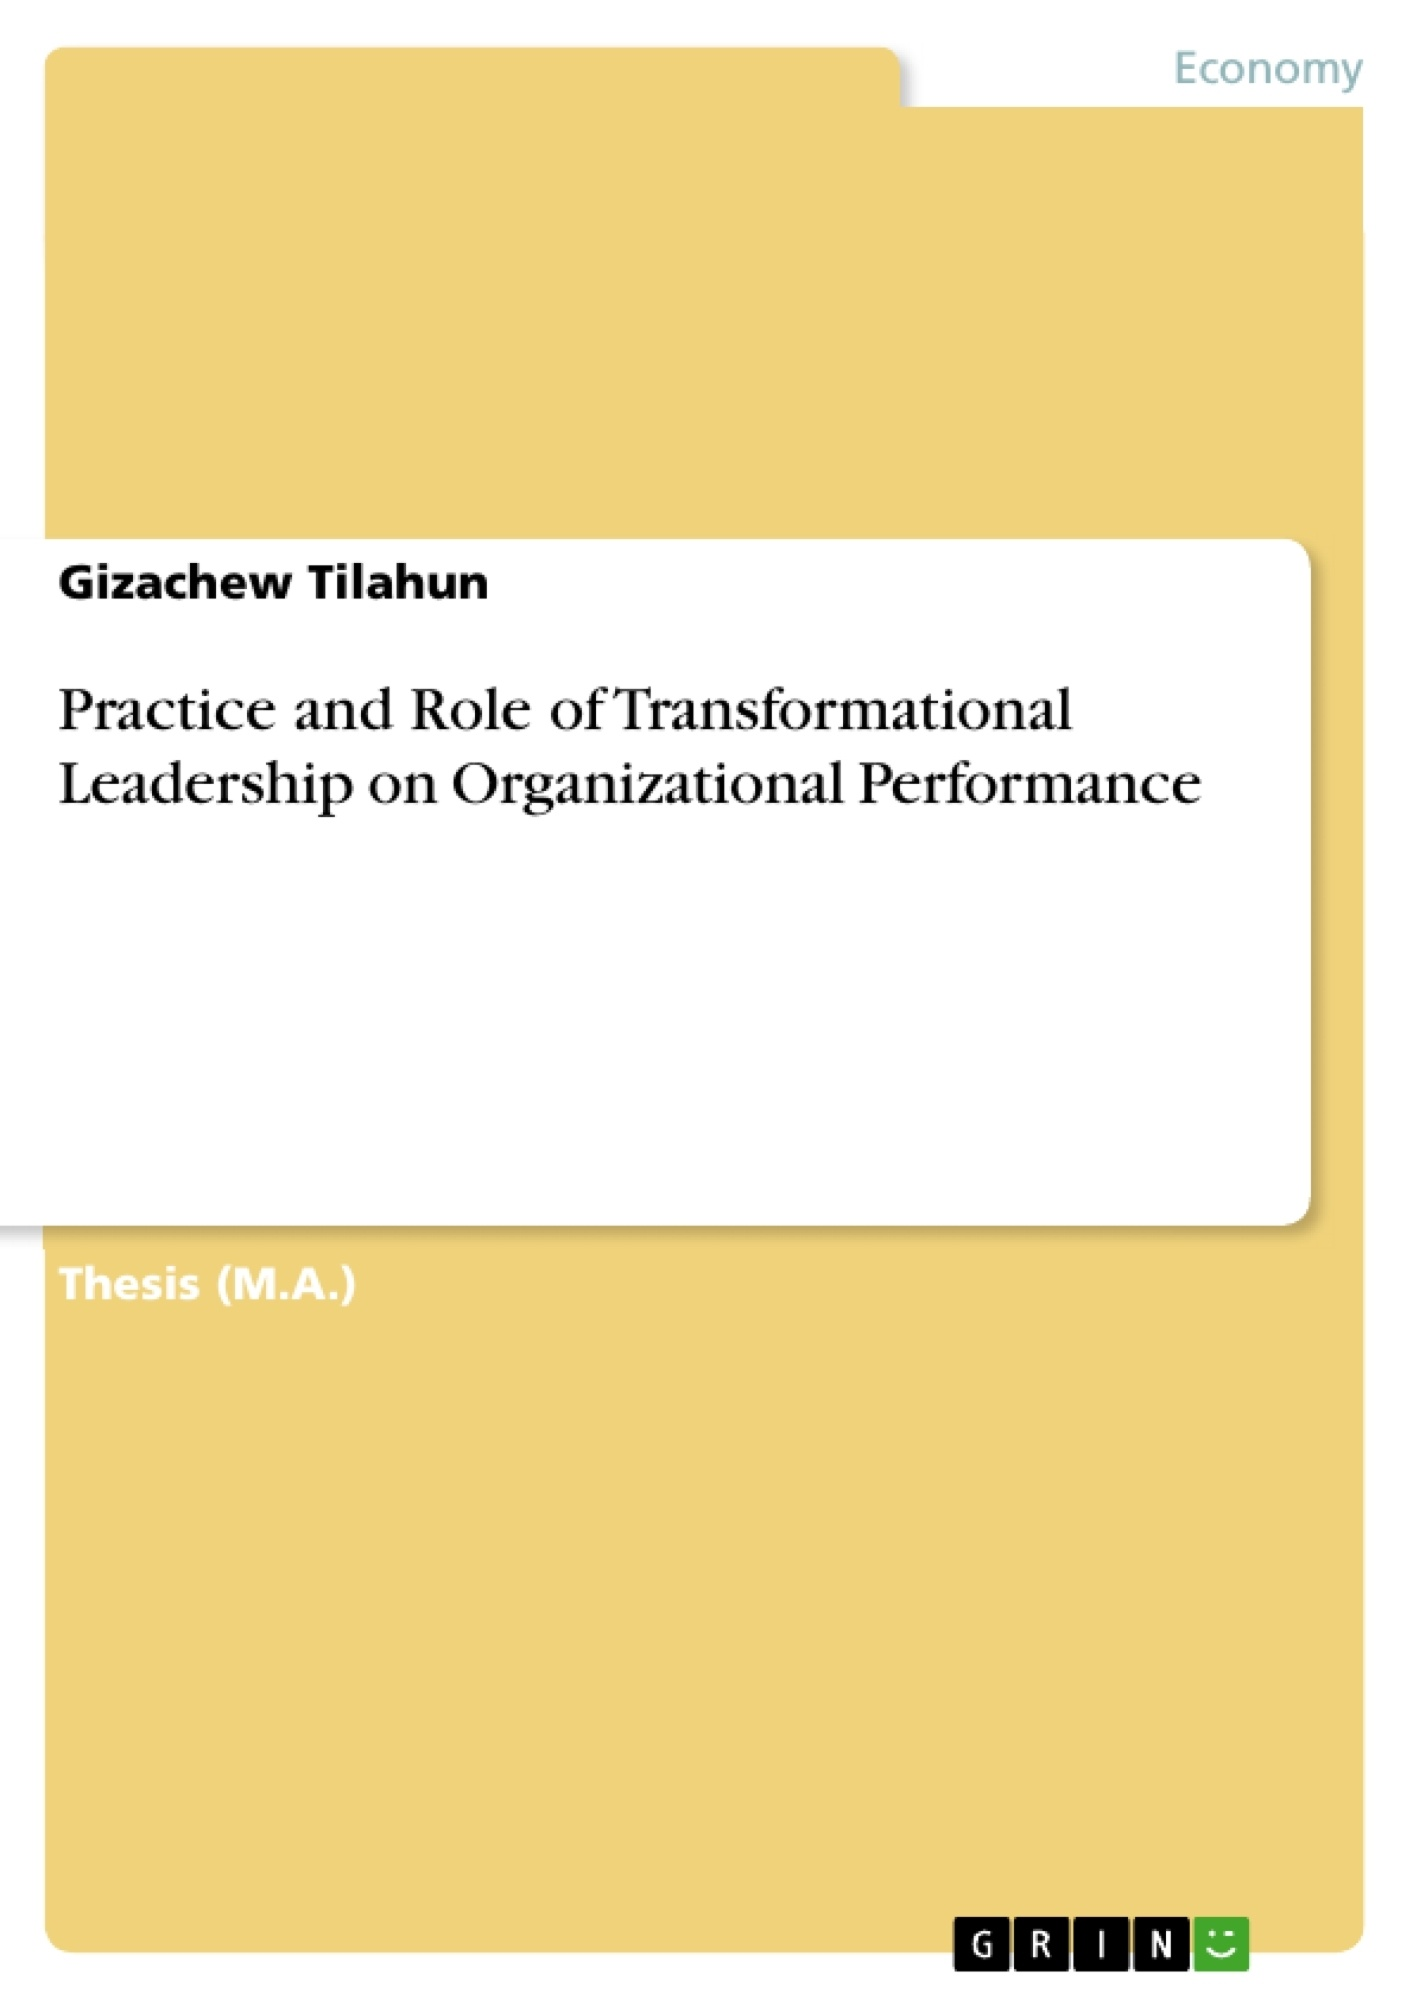 Title: Practice and Role of Transformational Leadership on Organizational Performance